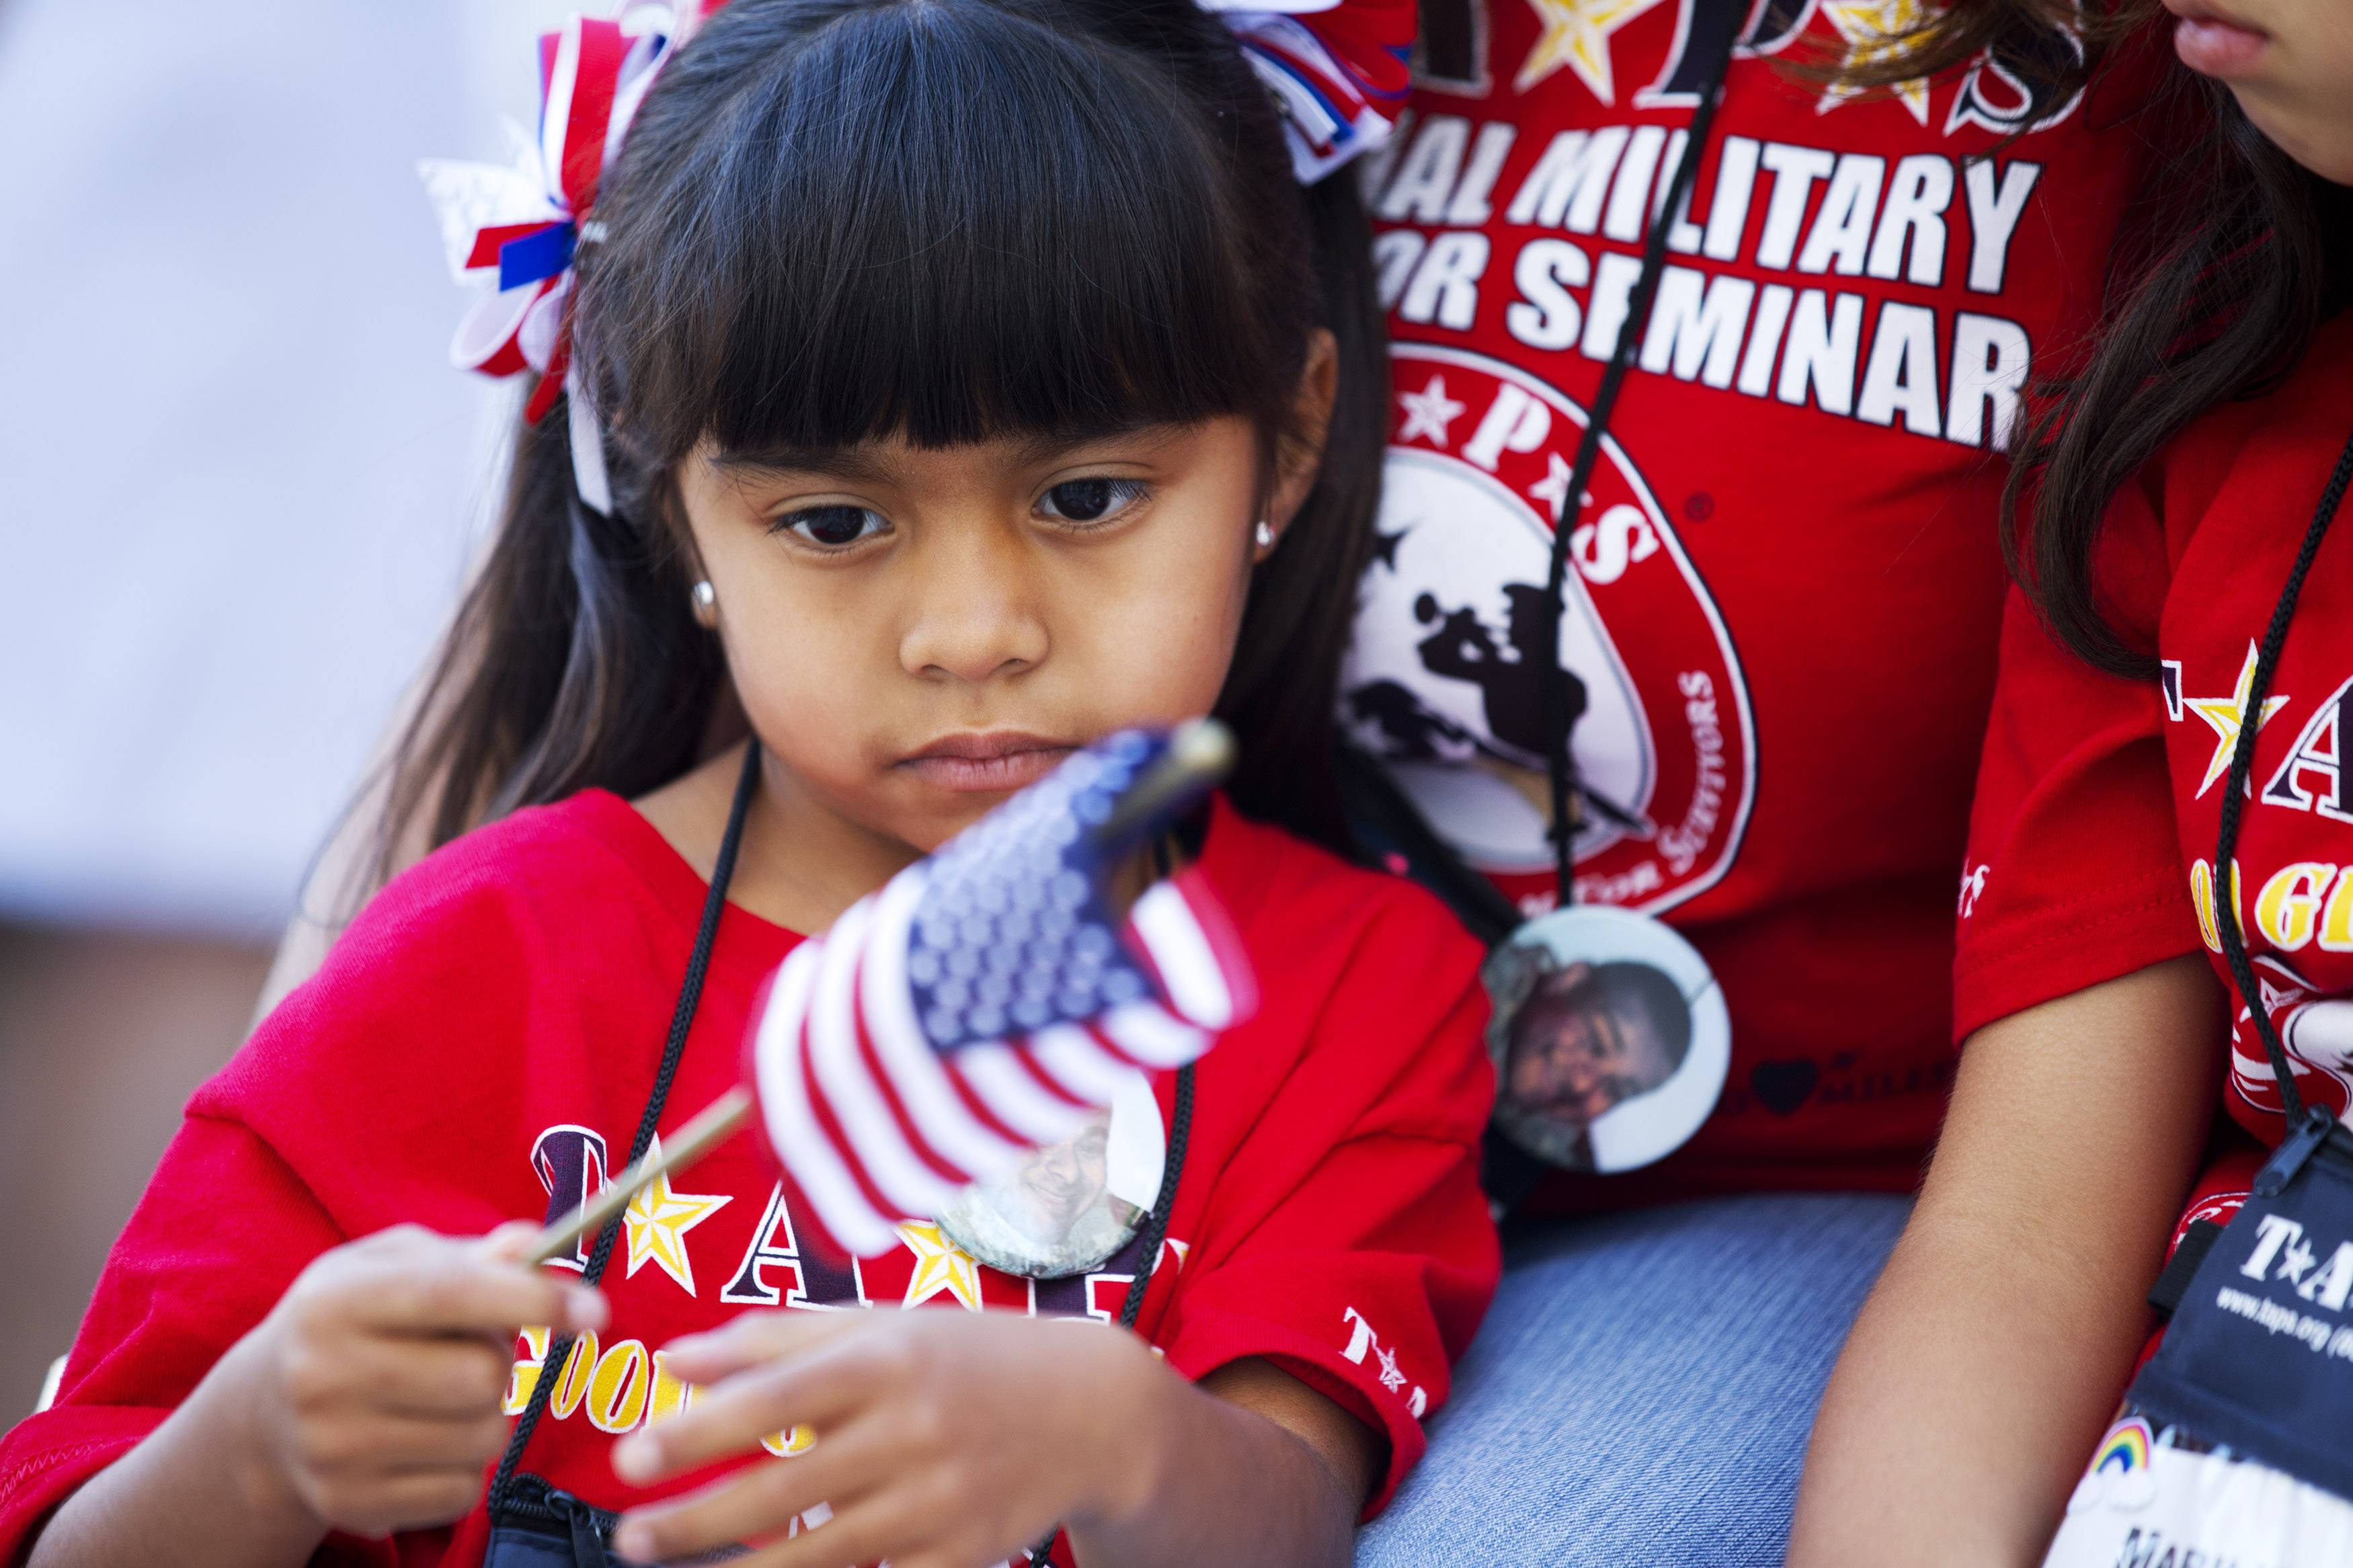 Mariana Cardenaz, 5, of San Diego, Calif., looks at a small U.S. flag while attending a Memorial Day event at Arlington National Cemetery Monday, May 26, 2014. Her father, Army Staff Sgt. Michael Cardenaz was killed serving in Afghanistan in 2010.